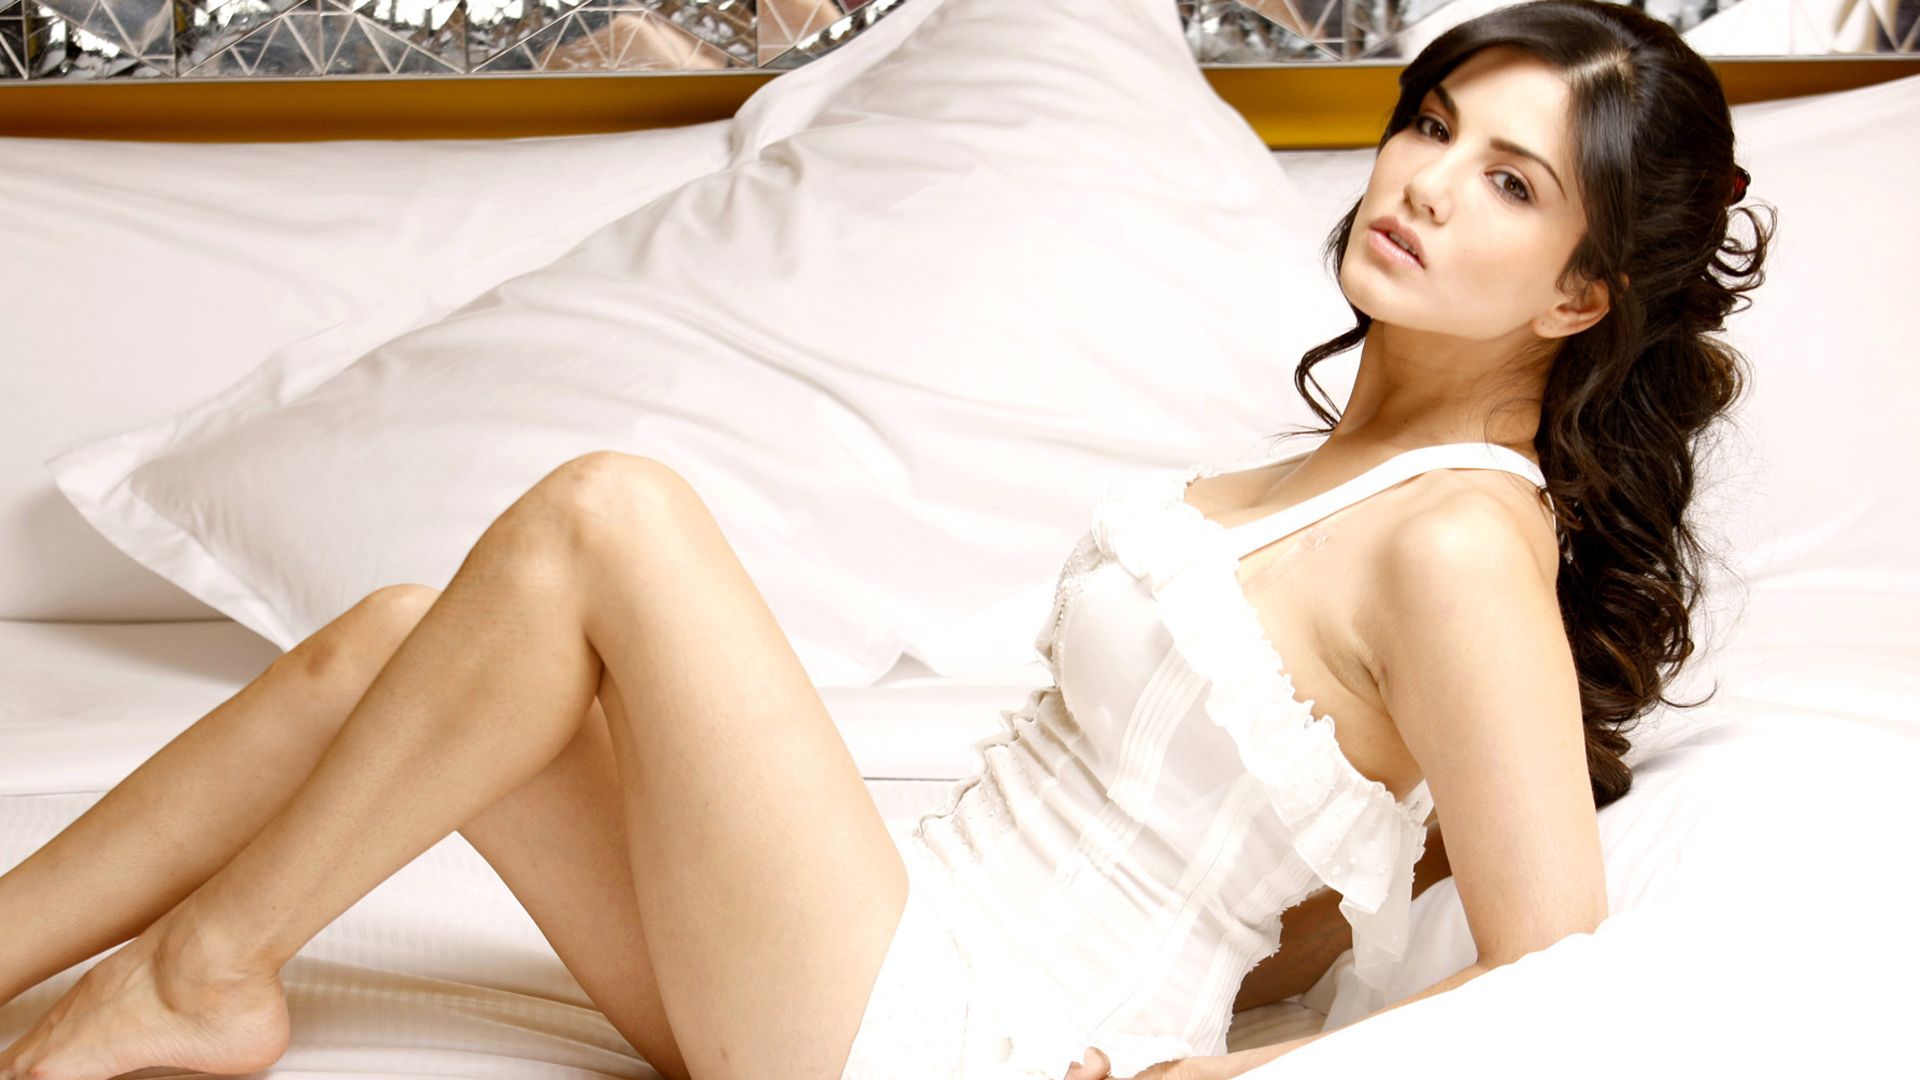 download sunny leone in white latest photoshoot 360x640 resolution